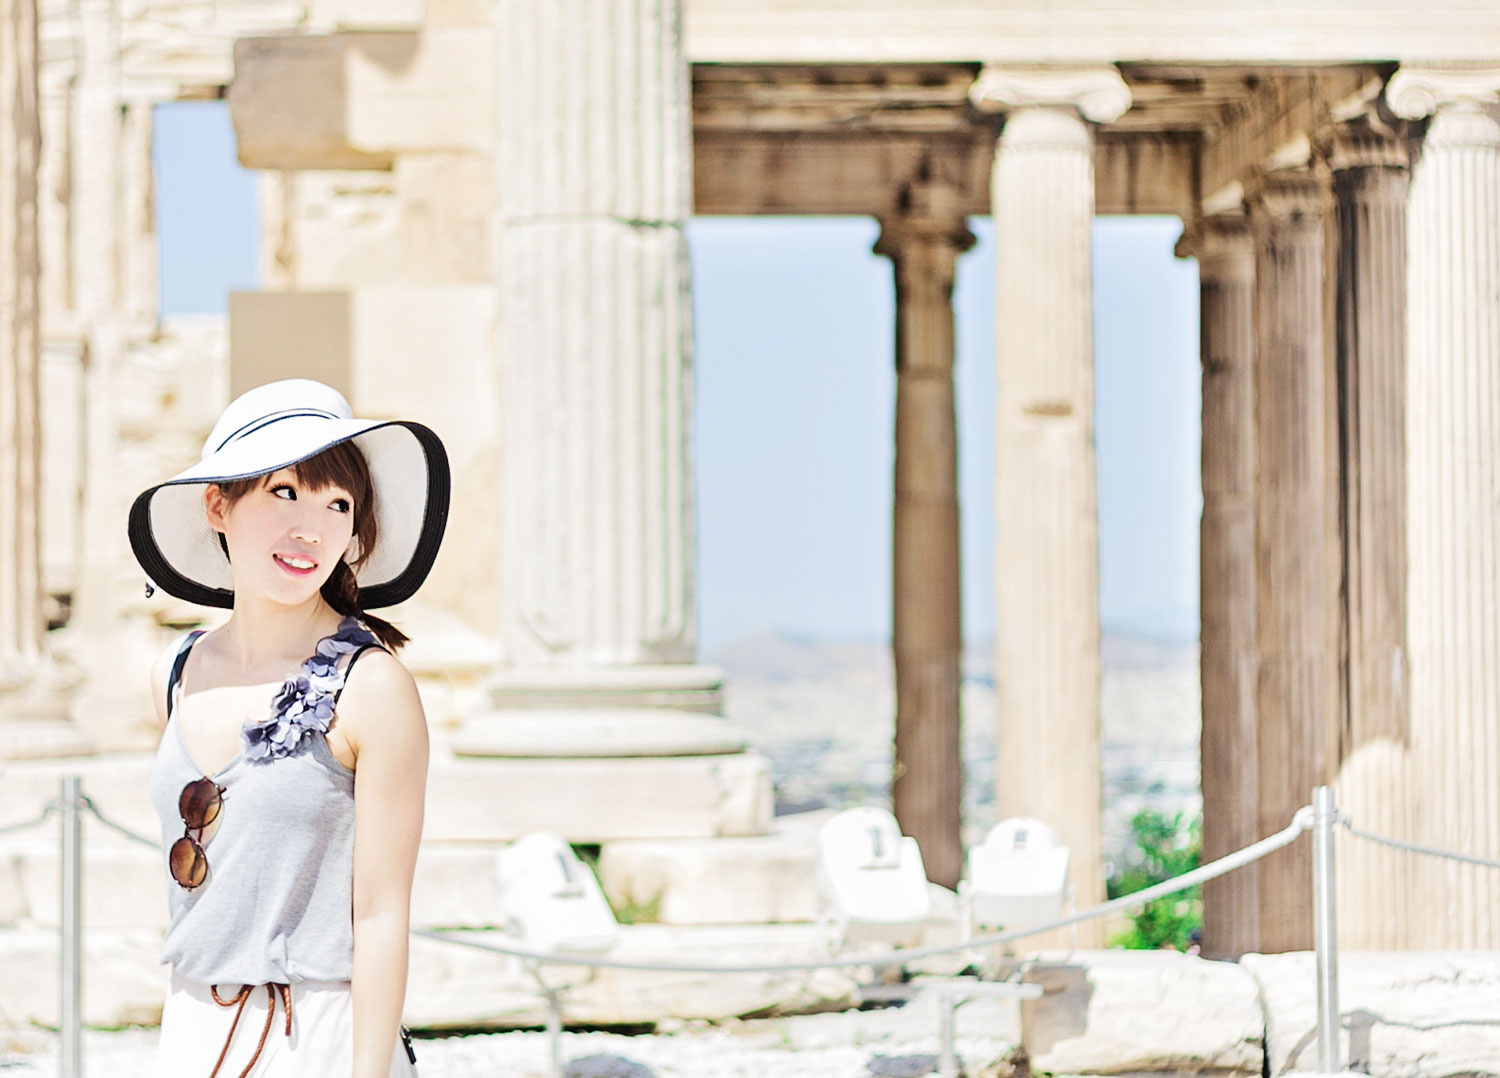 Athens Greece, Celebrity Cruise Vacation